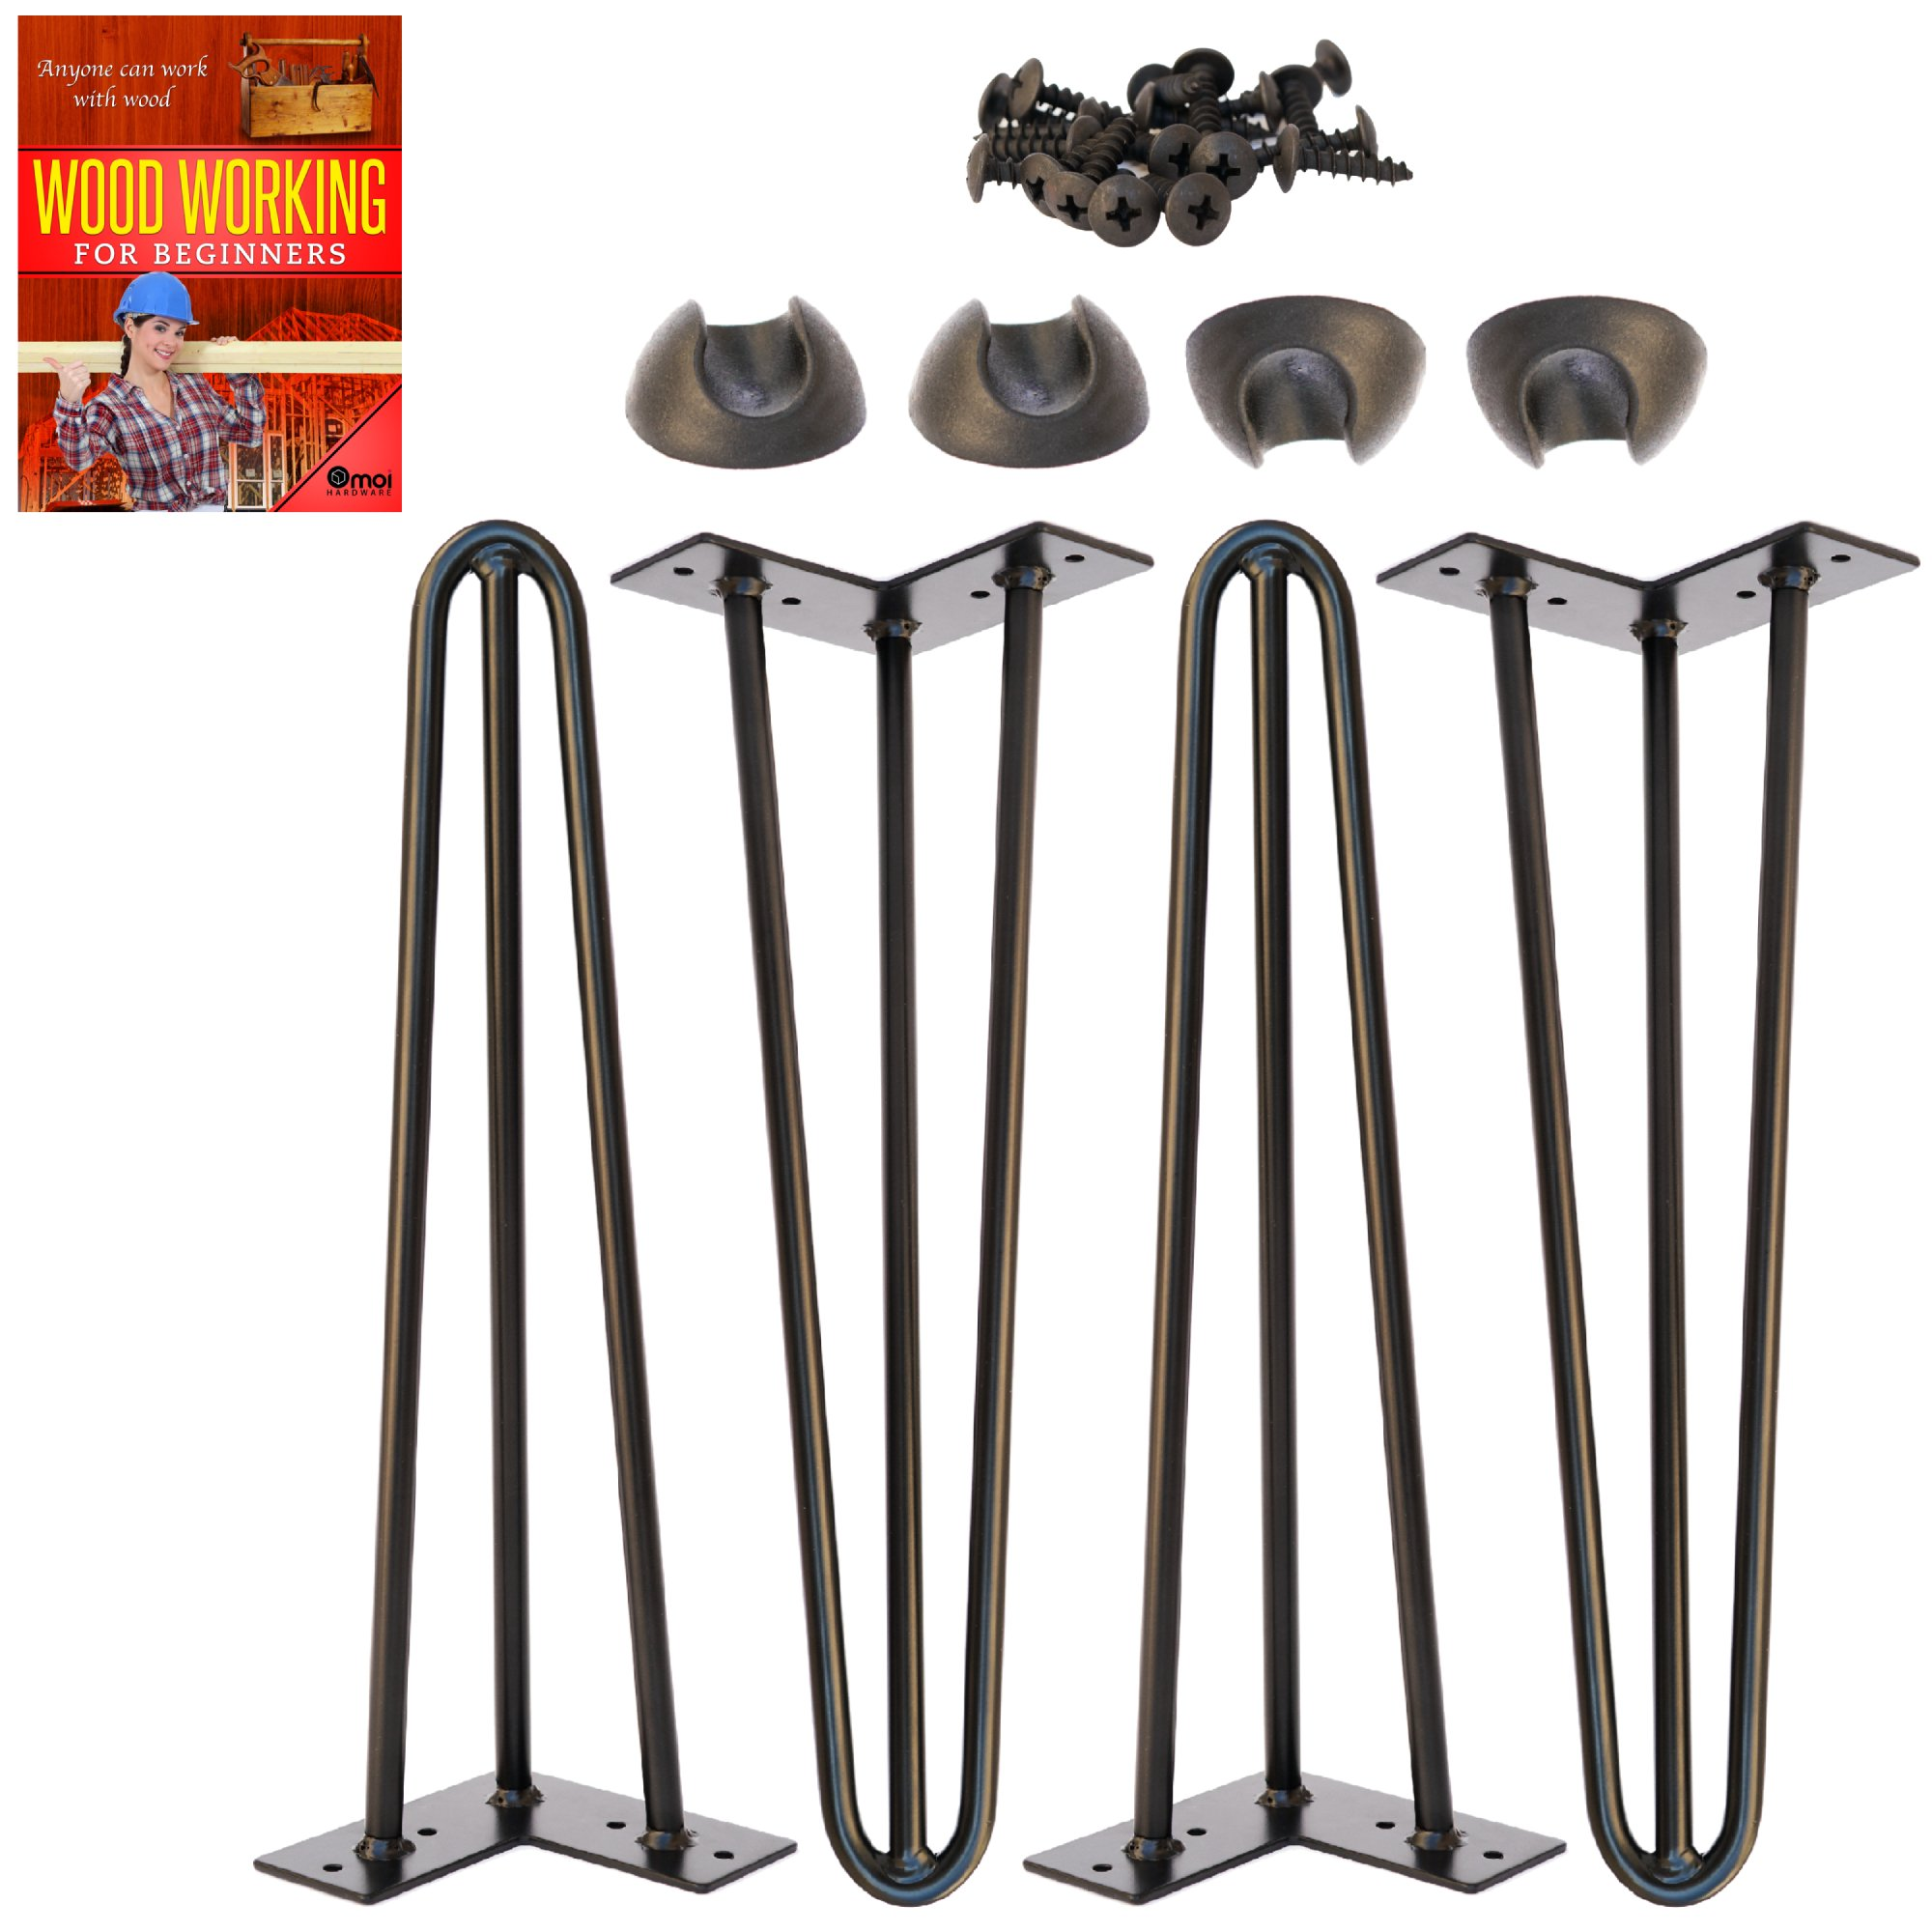 Omoi Hardware 16'' Hairpin Legs, 3 Rods, 1/2'' Thick, Heavy Duty, Black, Set of 4 Legs, 4 Floor Protectors & Screws - For Patio Bench Legs, Coffee Table